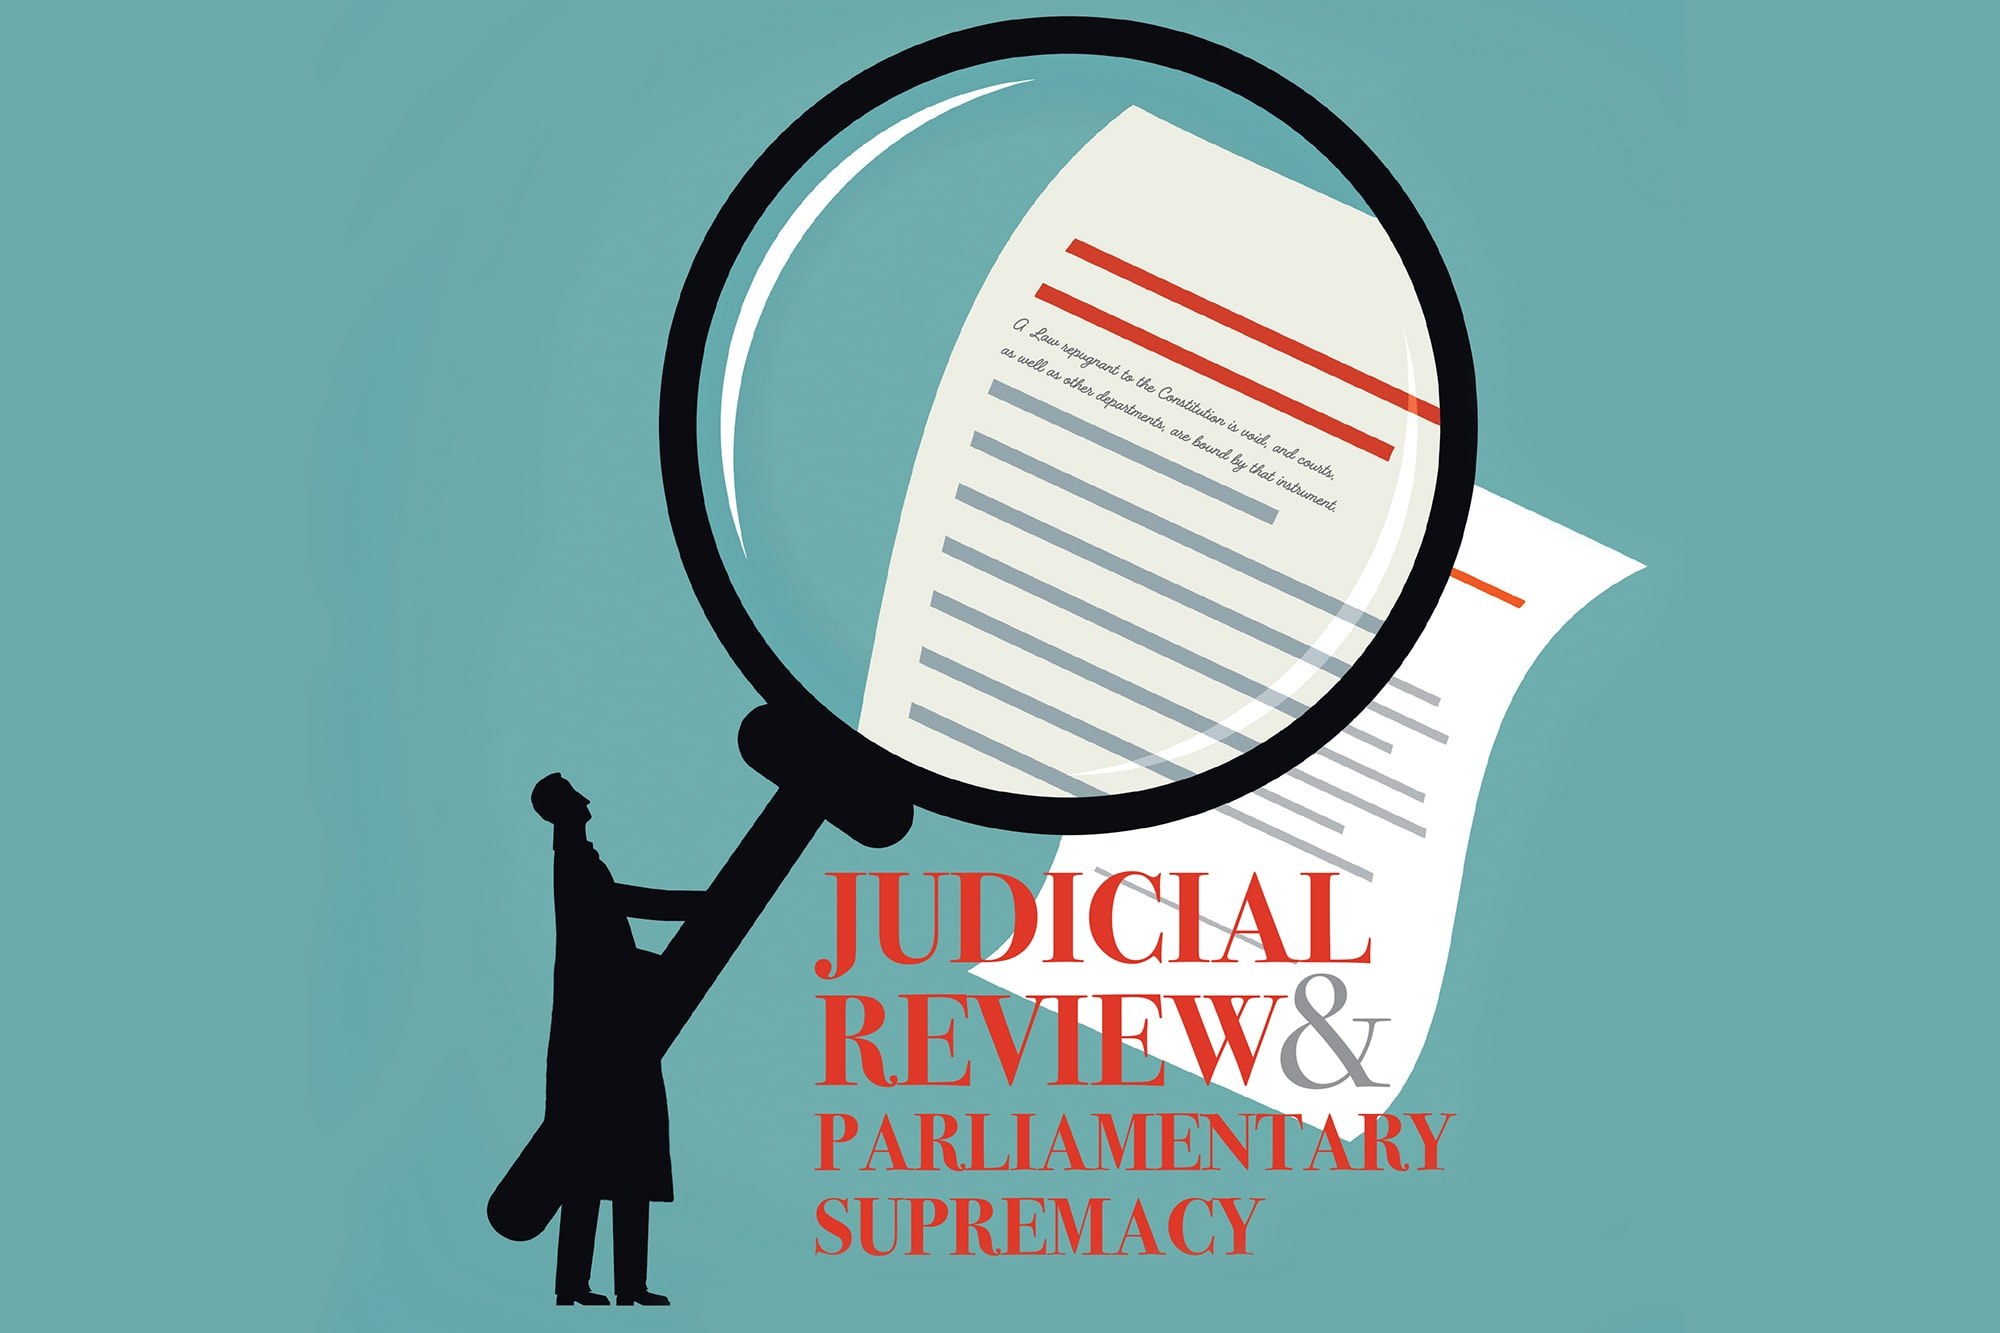 Judicial Review and Parliamentary Supremacy